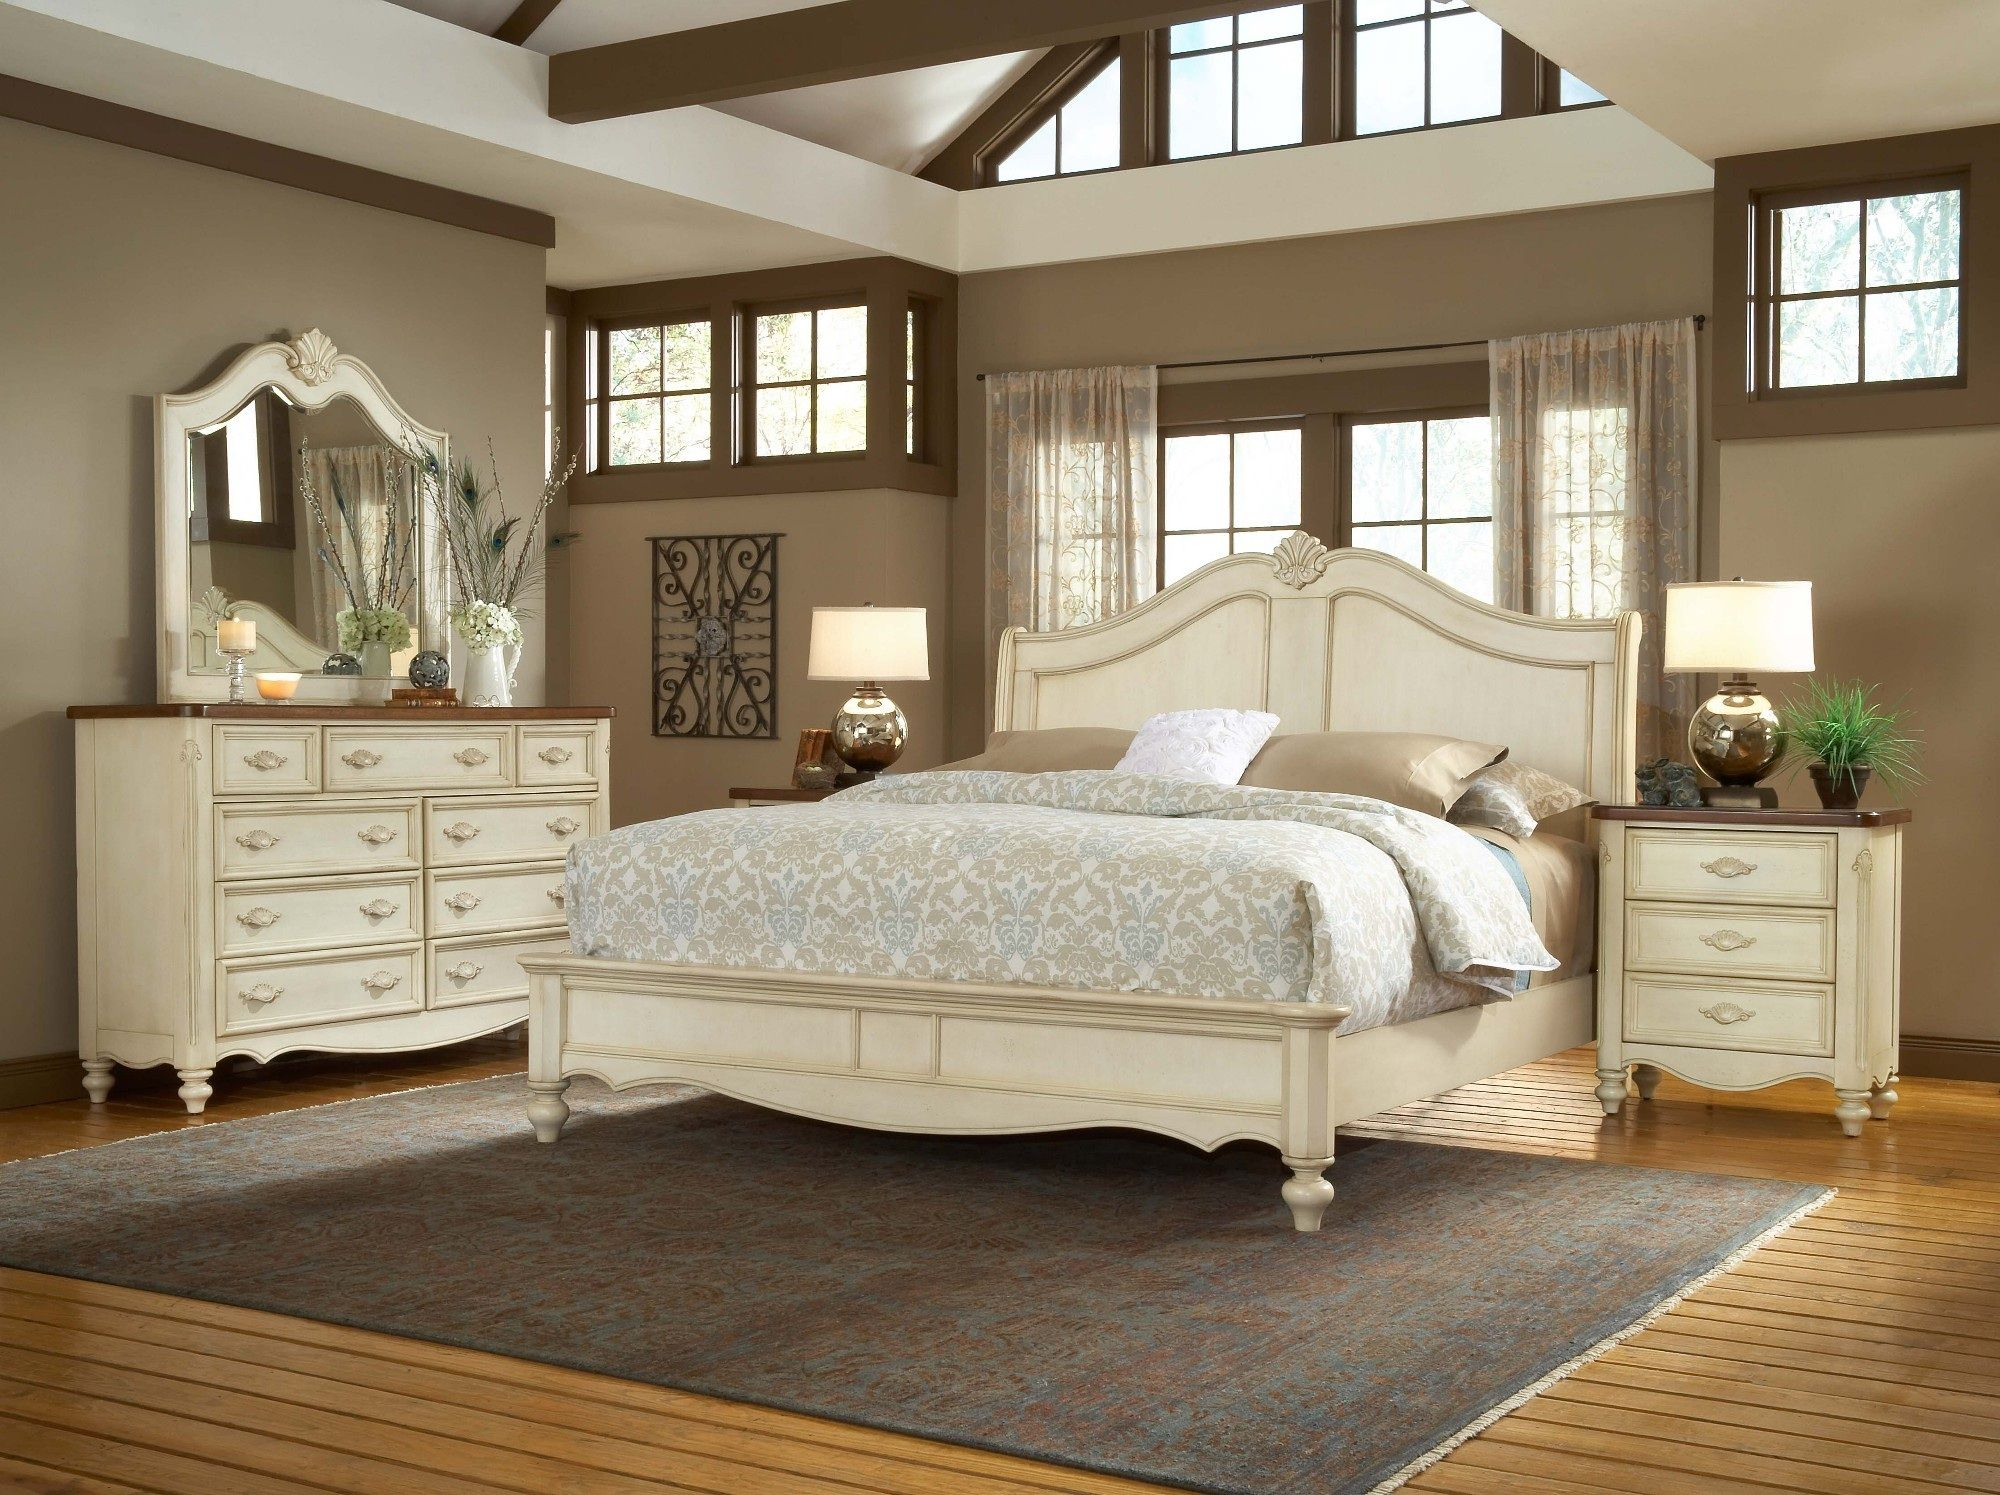 furniture bedroom antique sets sale styles of style shabby white for vintage size set full